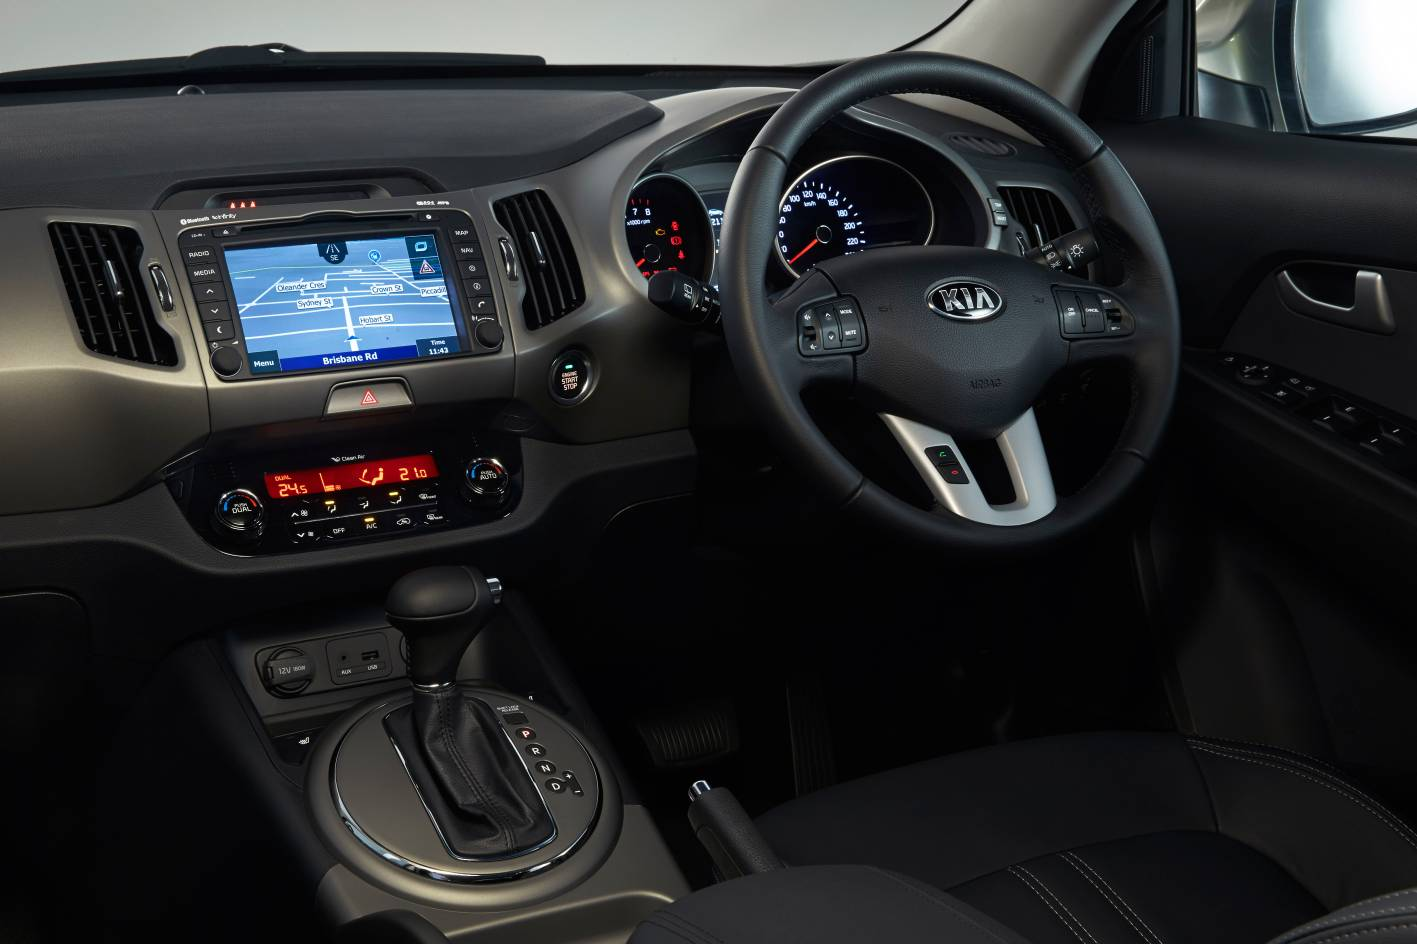 kia sportage review 2014 kia sportage suv. Black Bedroom Furniture Sets. Home Design Ideas